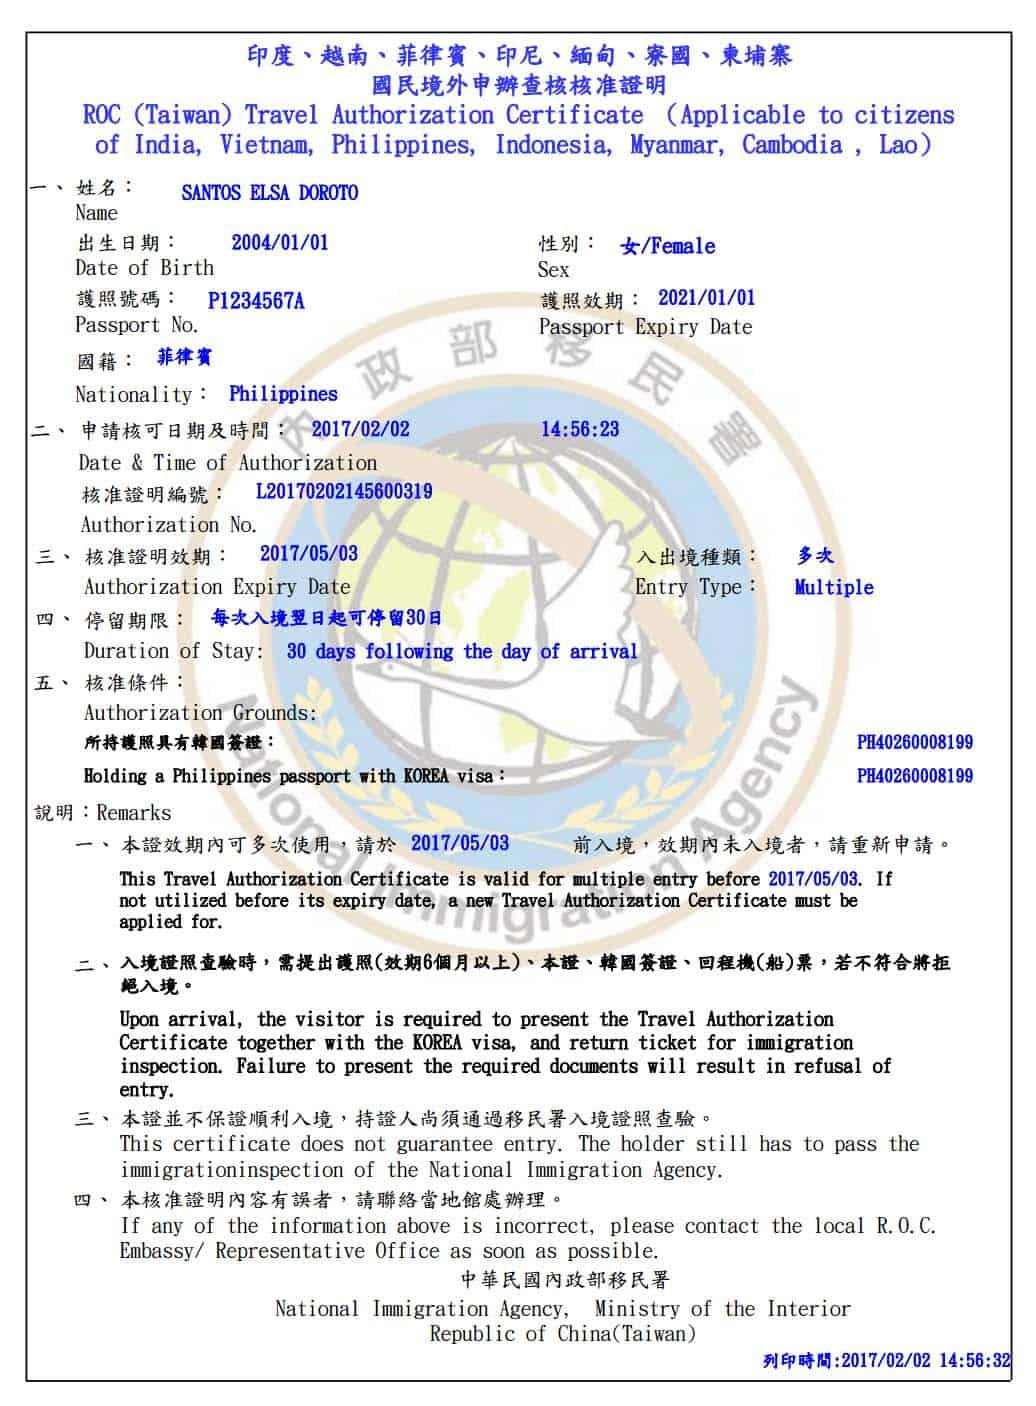 TAIWAN VISA-FREE Entry Requirements (Until July 2020) | The